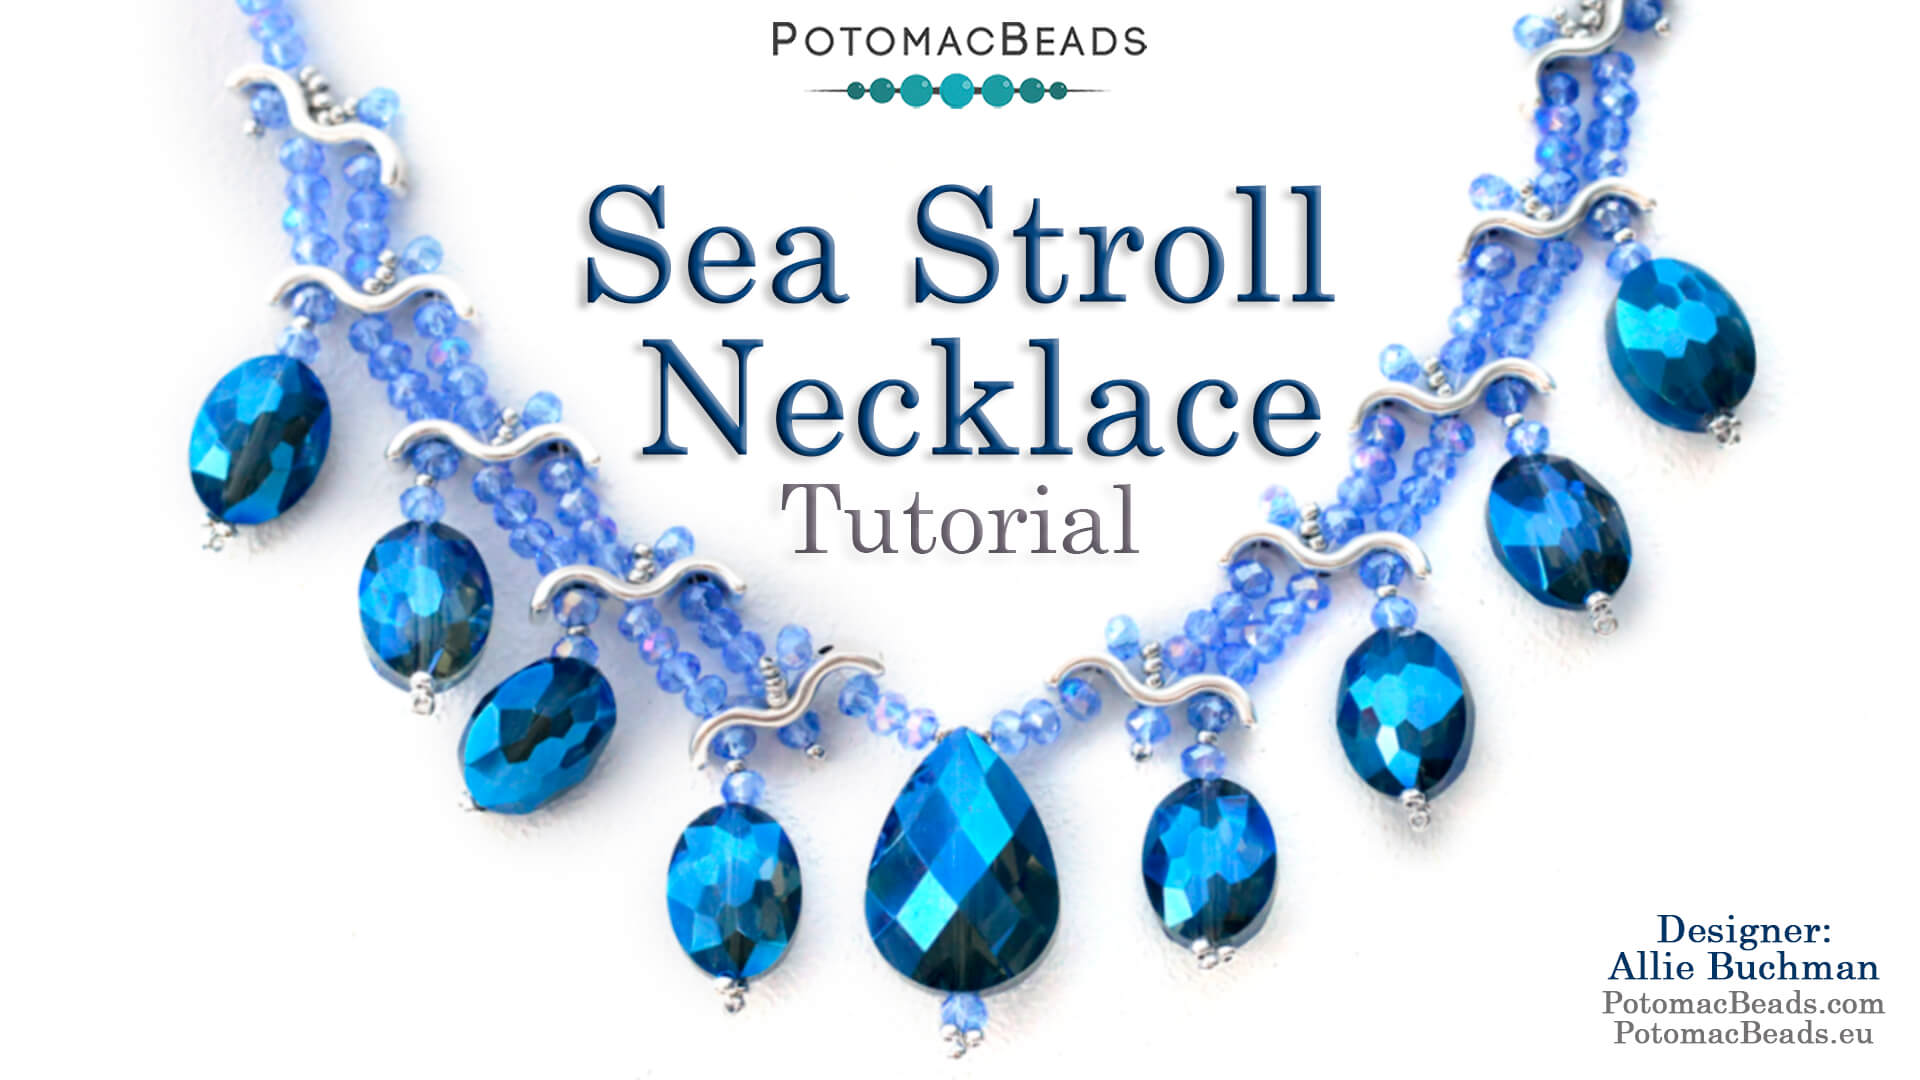 How to Bead / Videos Sorted by Beads / Potomax Metal Bead Videos / Sea Stroll Necklace Tutorial